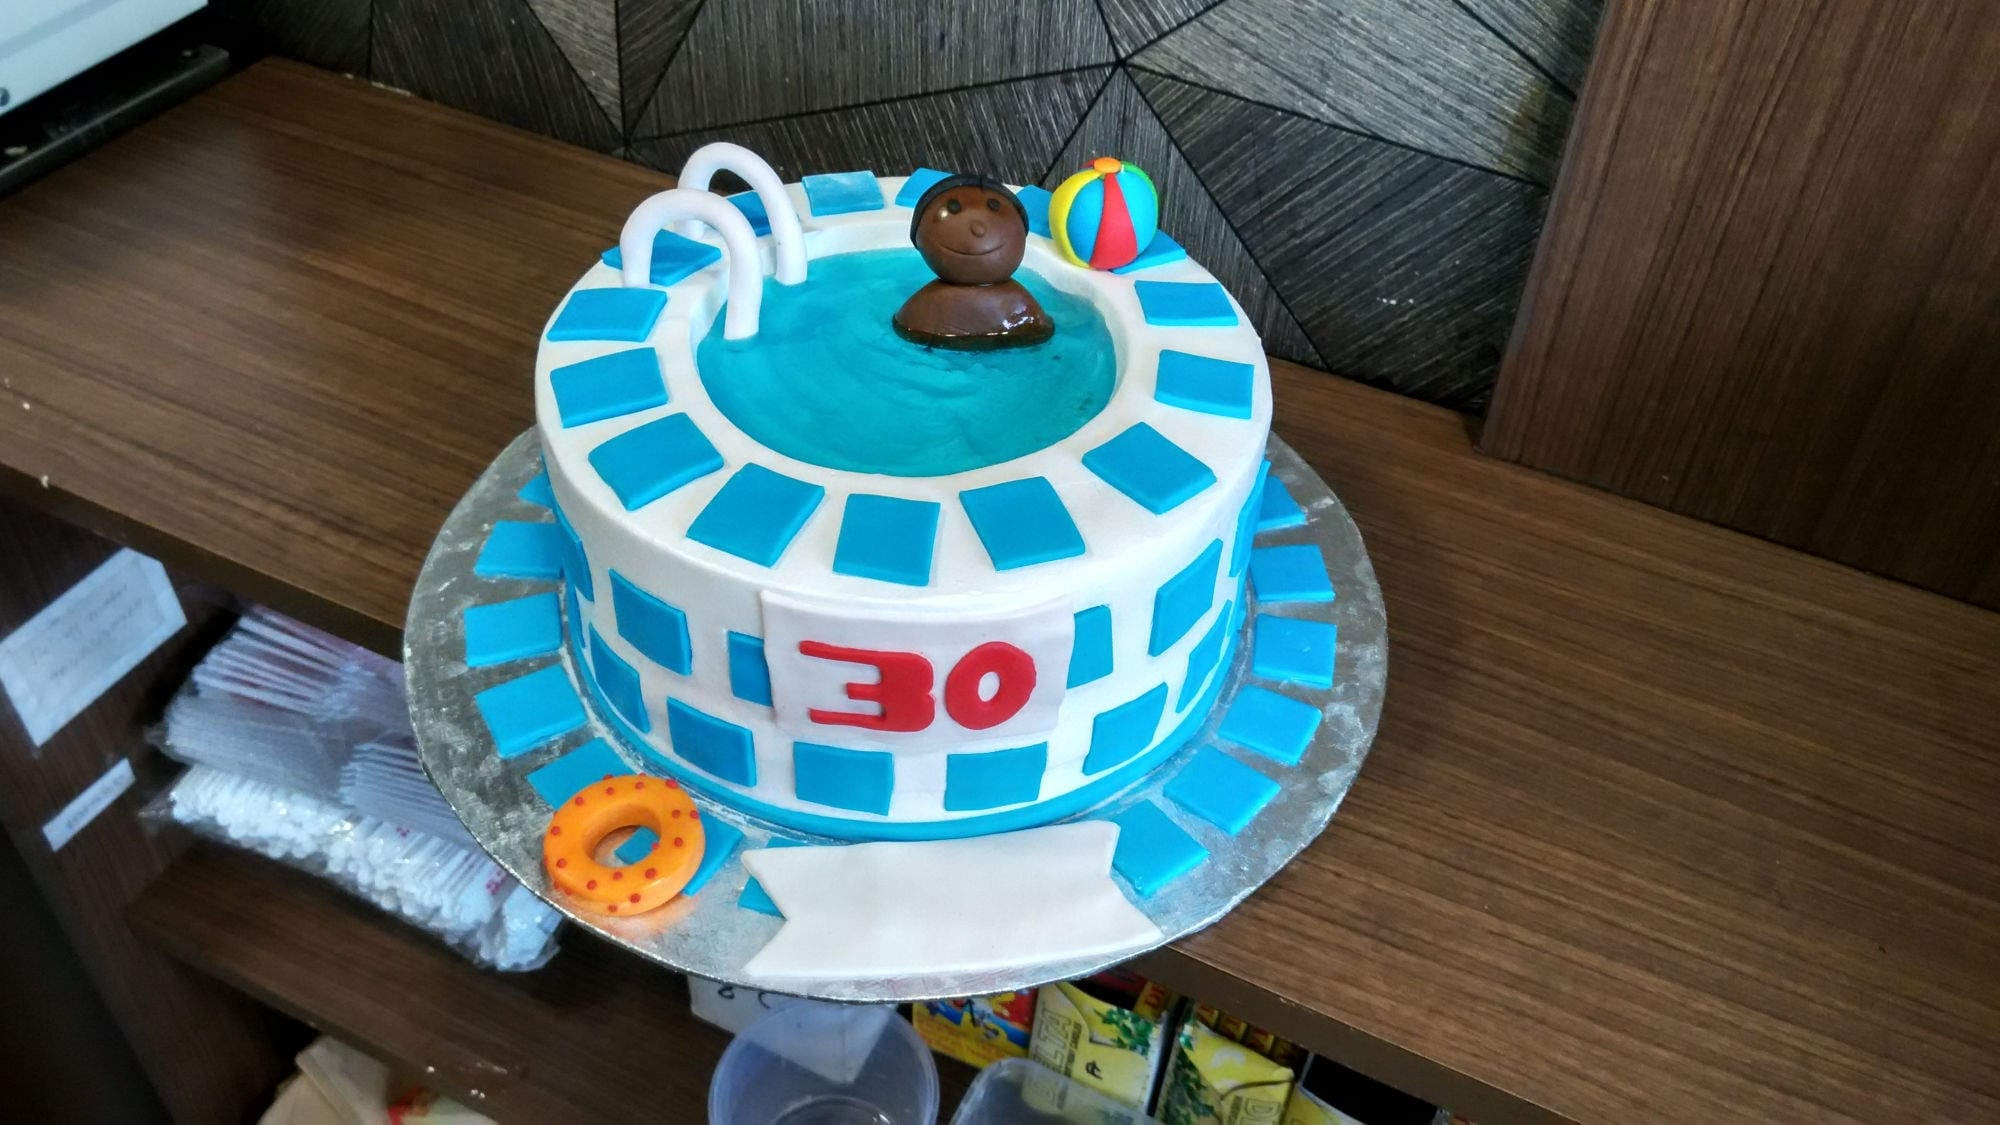 Cake Delivery Services In Porur Chennai Order Cake Online Justdial